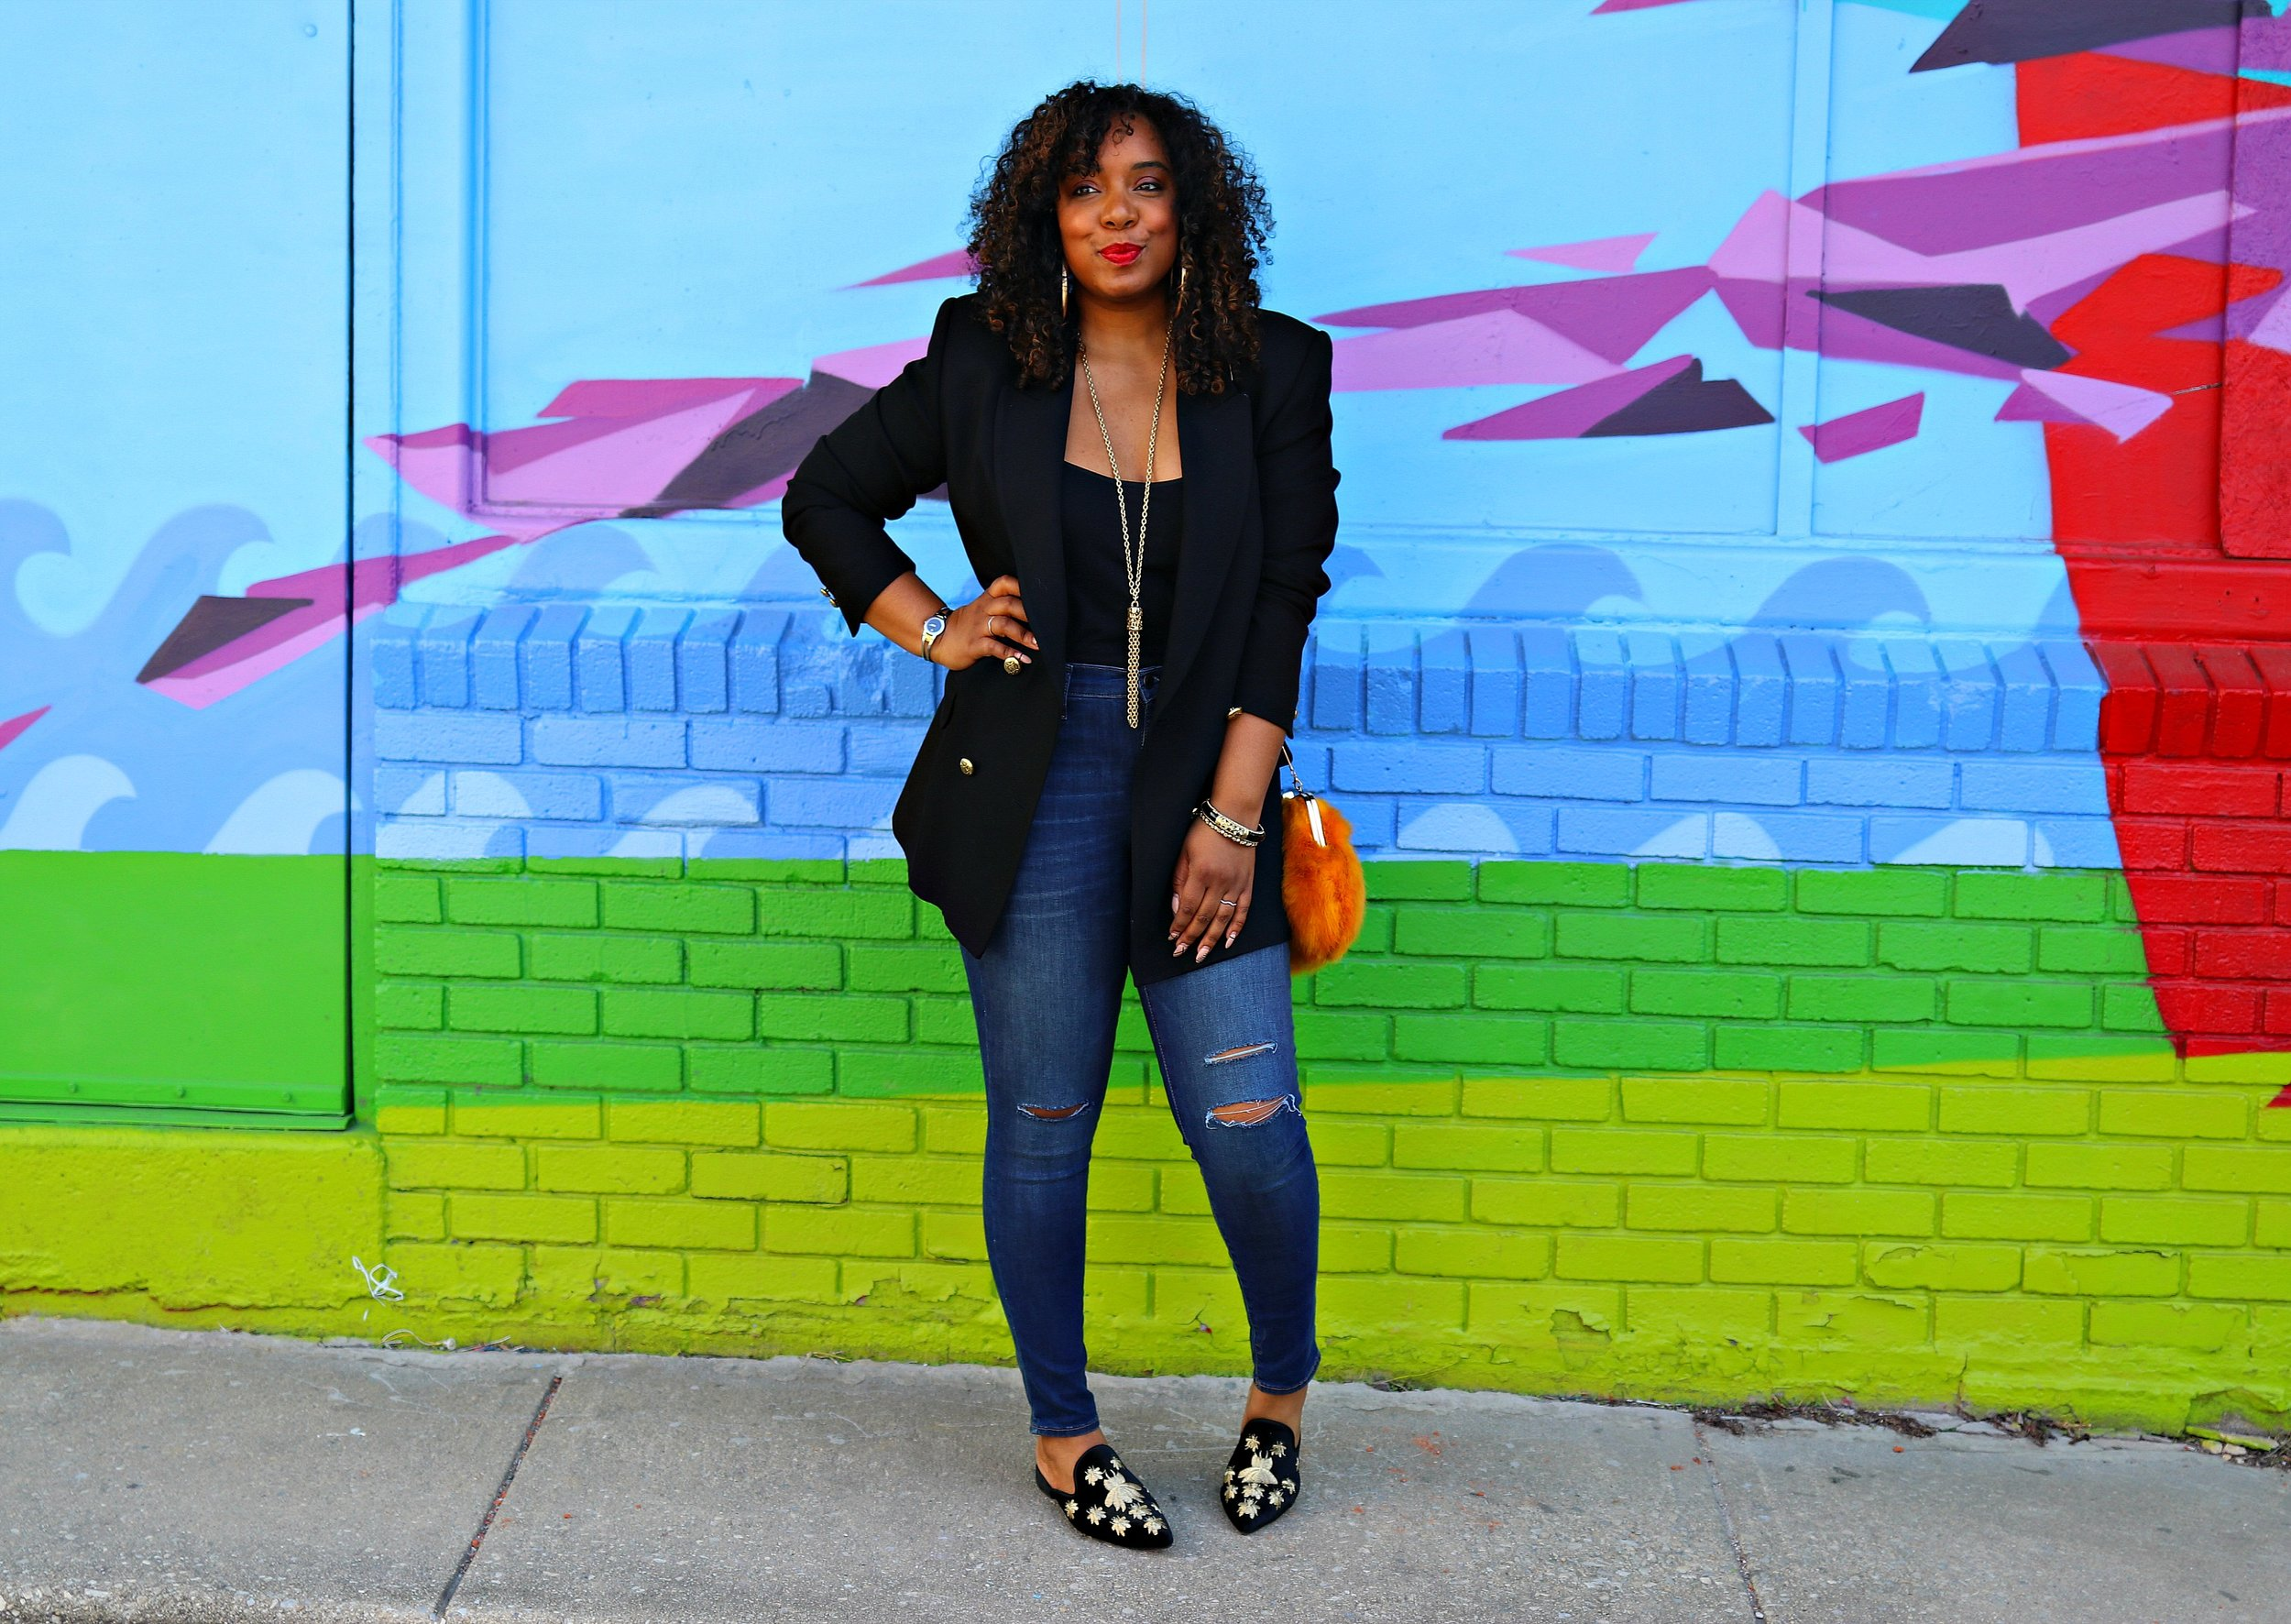 Casual Slay, Classic Look, Classic meets trendy, fashion, ootd, street style